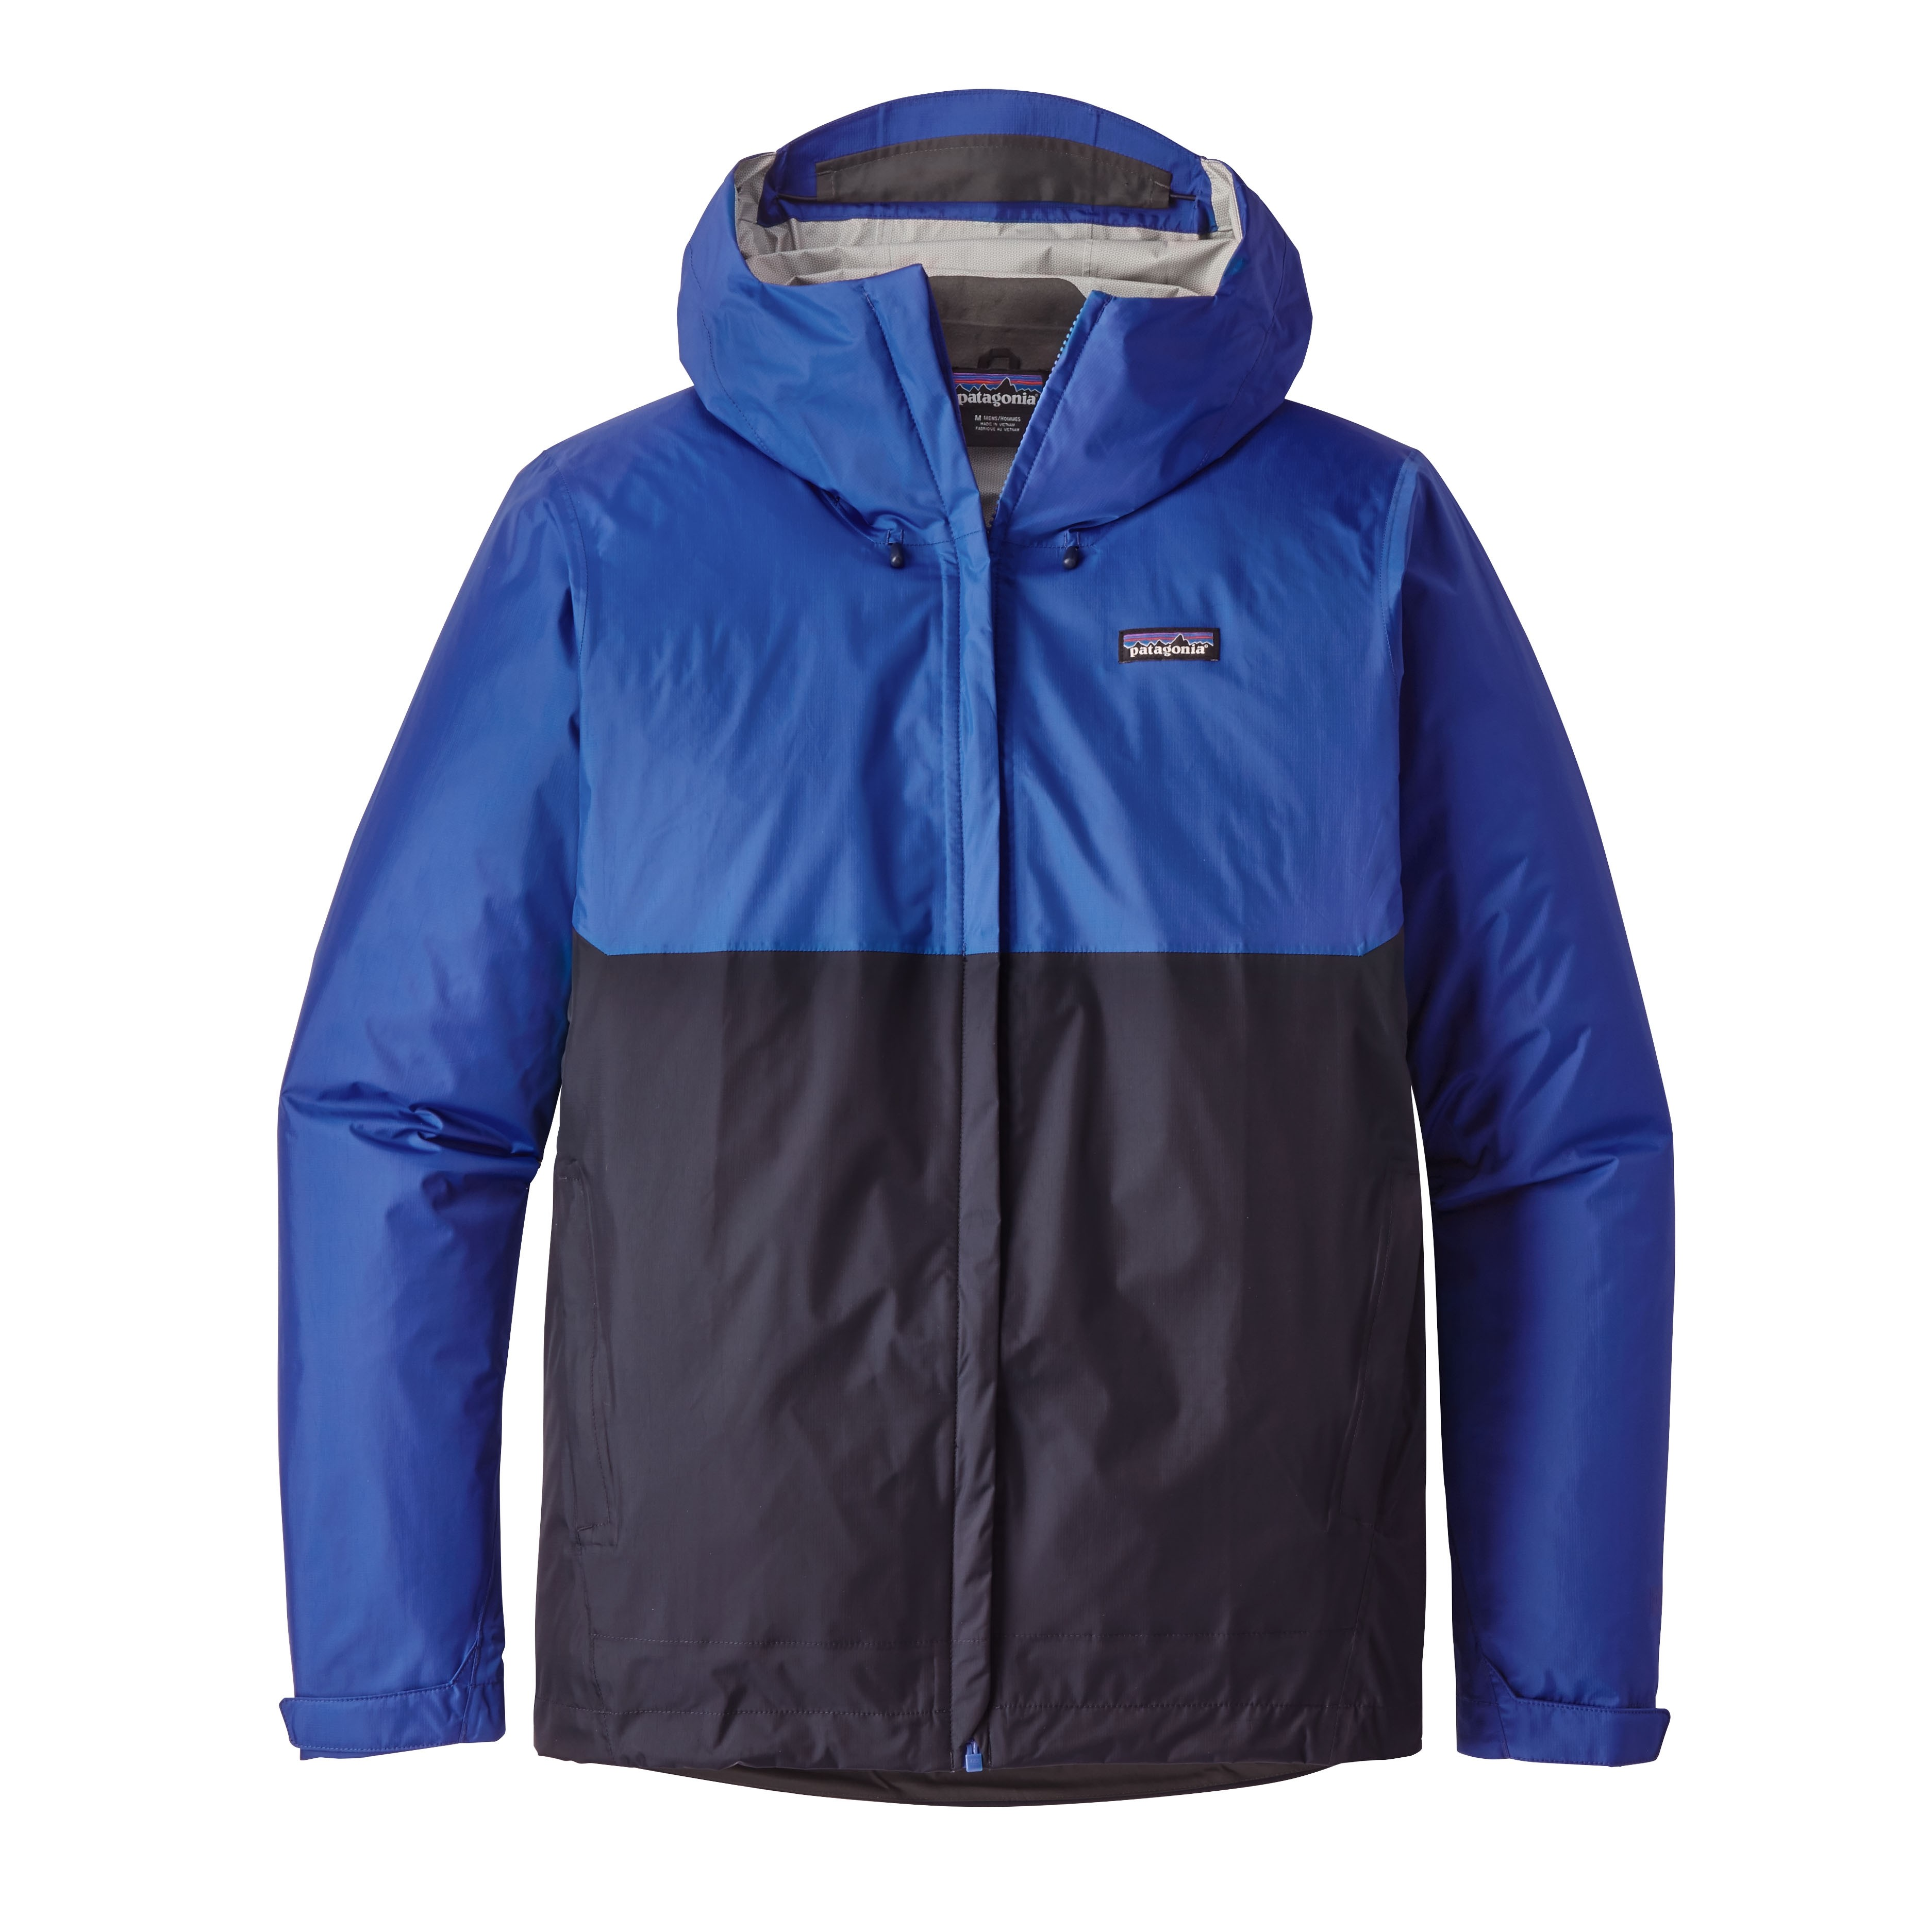 Patagonia Mens Torrentshell Jacket : Viking Blue w Navy Blue